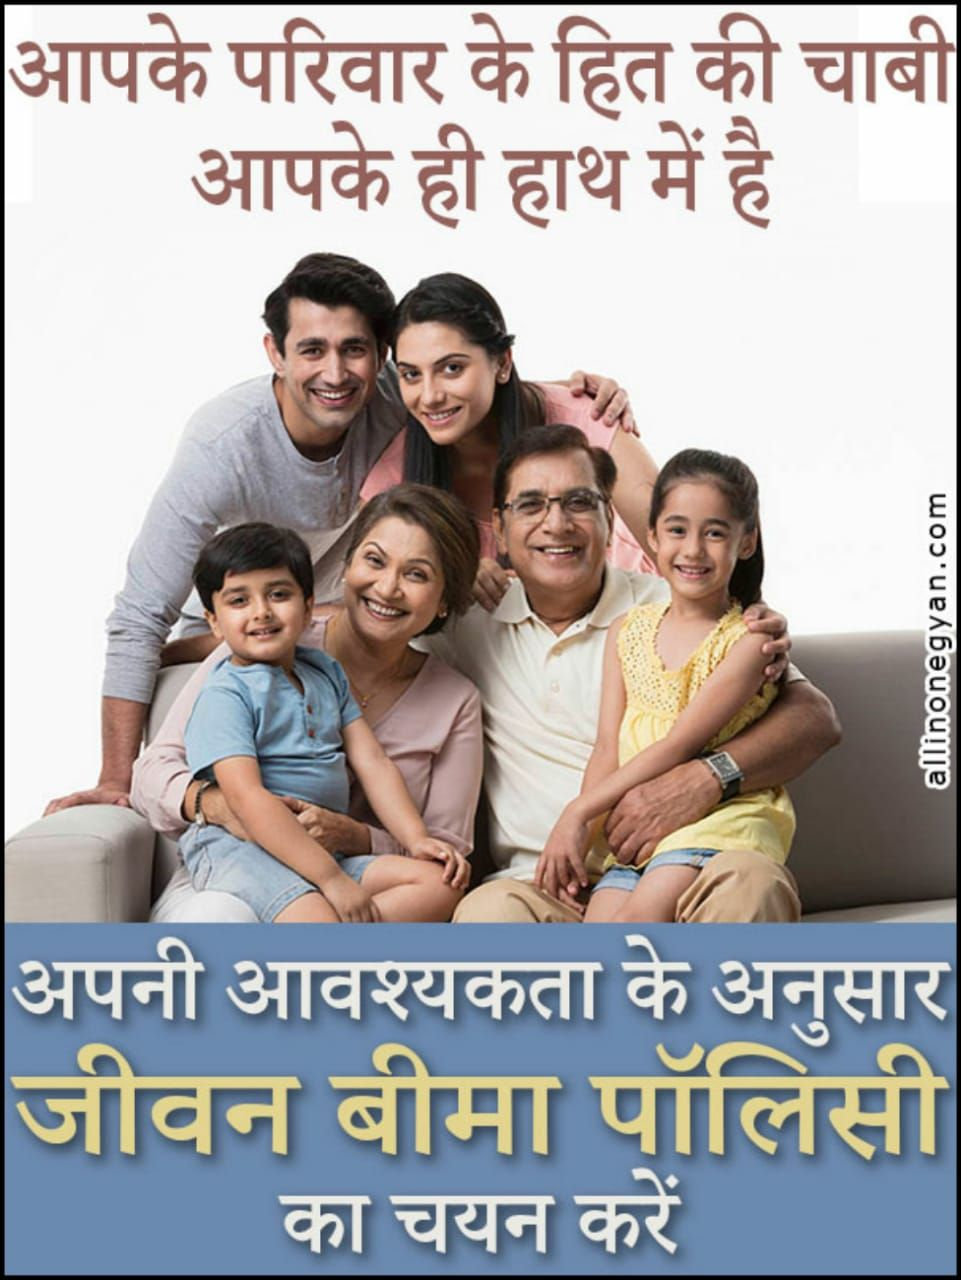 Make Your Life Om Shanti Om Call 9814814004 Life Insurance